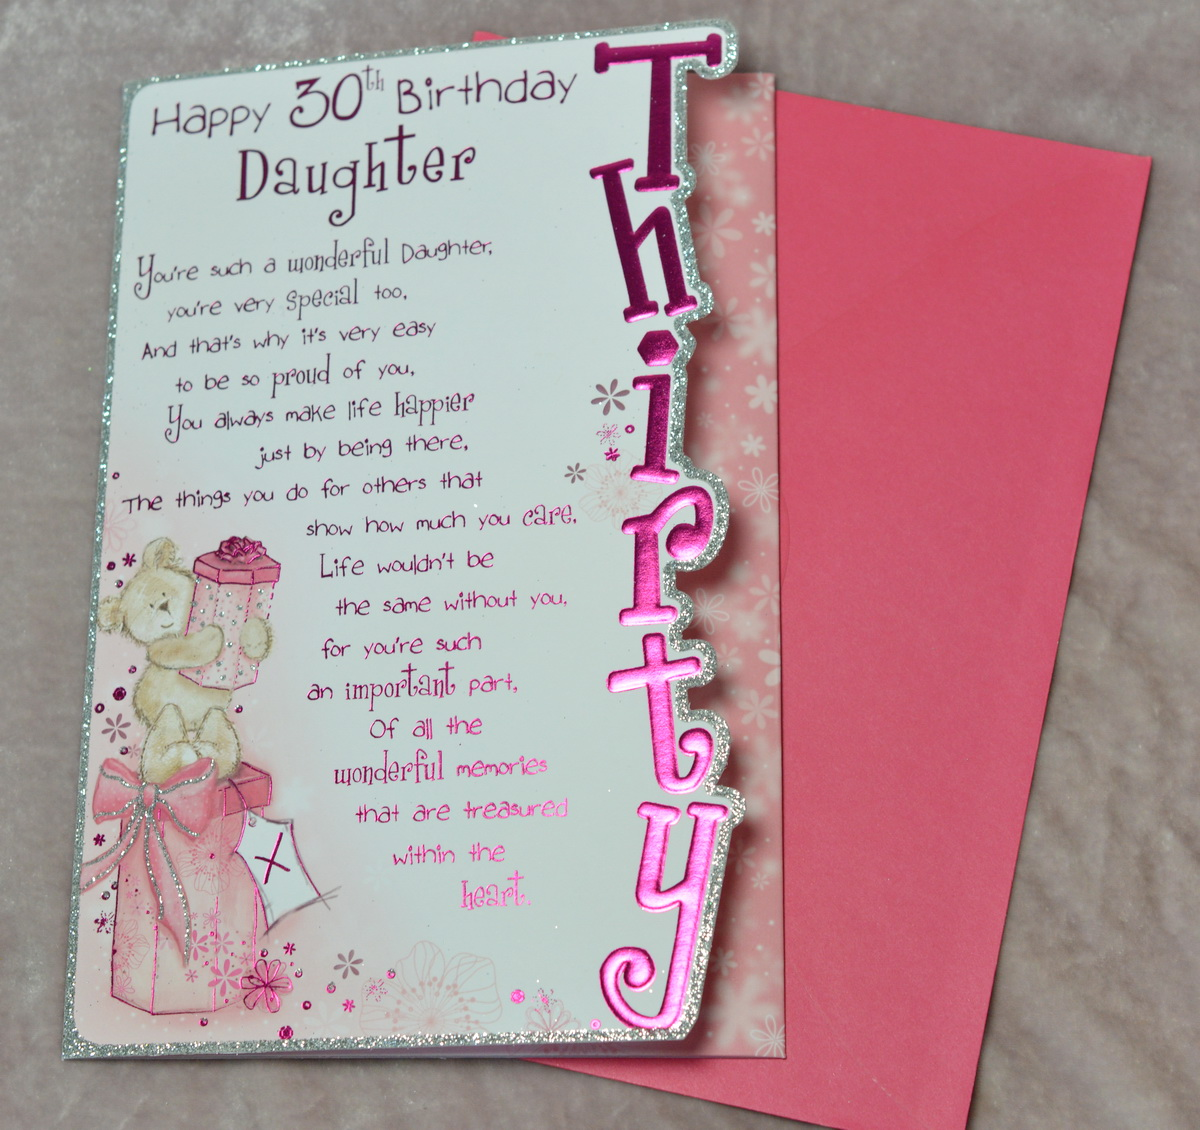 Handmade greeting cards blog birthday cards for women age handmade greeting cards blog birthday cards for women age birthday cards for her kristyandbryce Choice Image